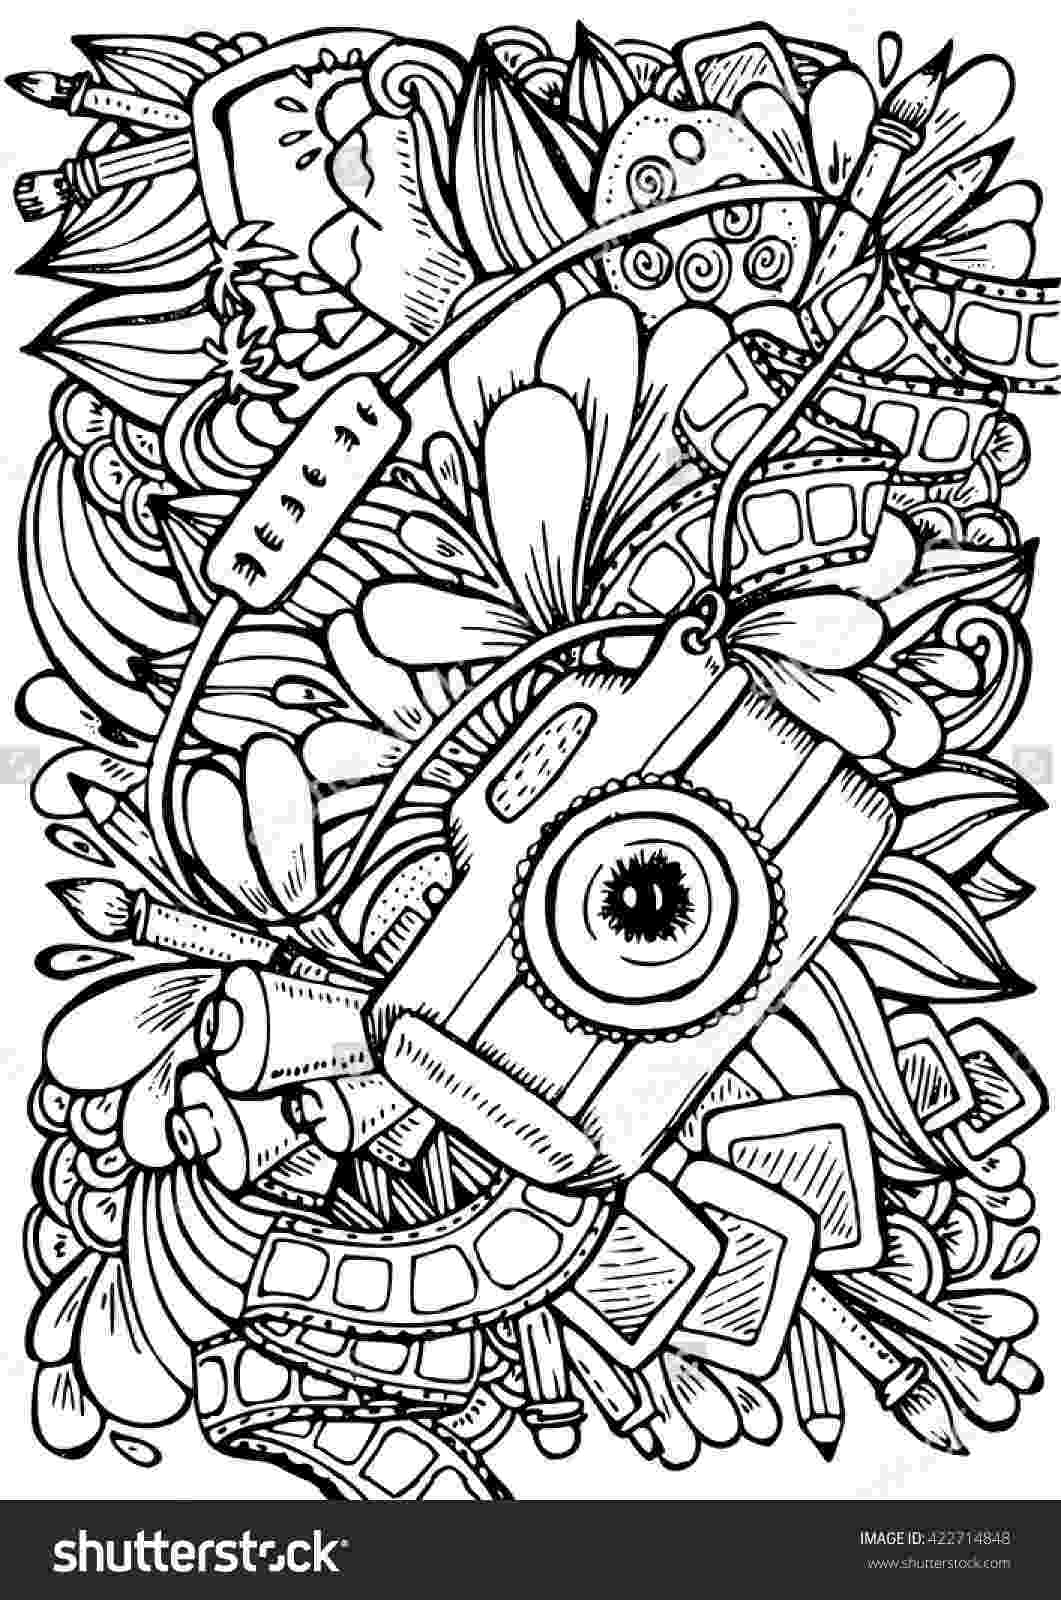 coloring book for adults tokopedia vector hand drawn pattern anti stress coloring book page for tokopedia book coloring adults